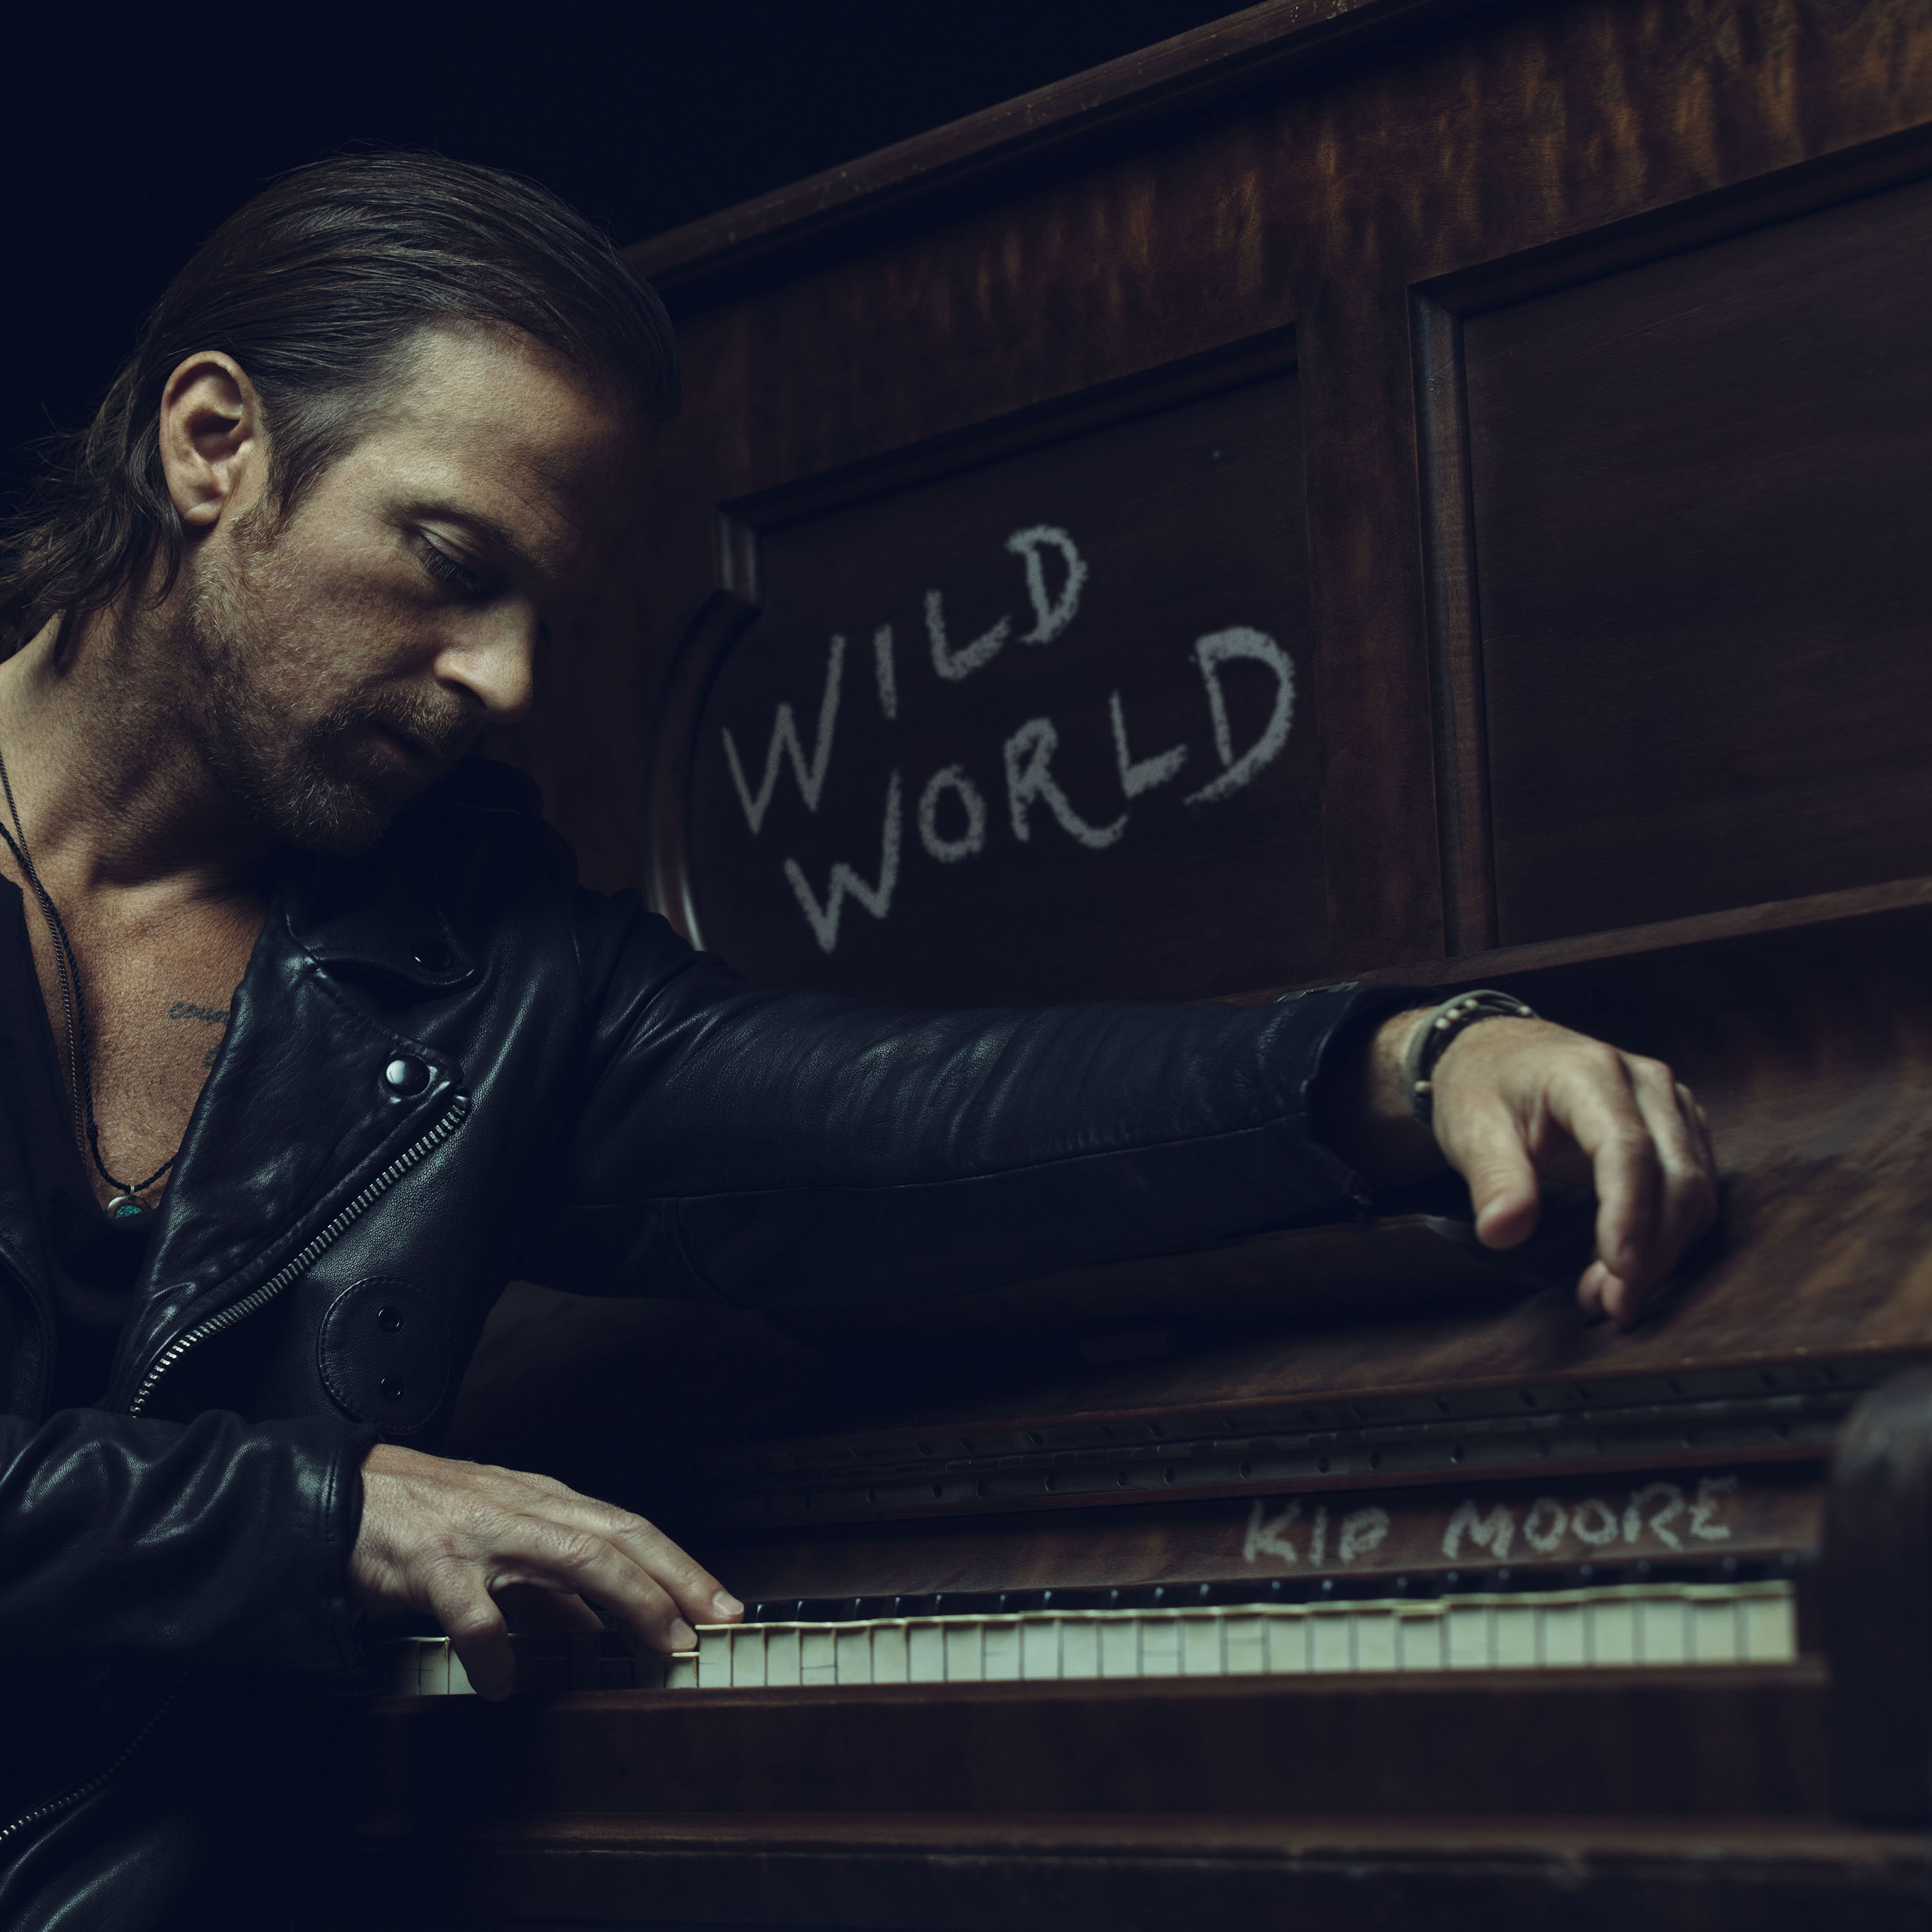 KIP MOORE SAYS FANS CAN EXPECT HONESTY AND JOY IN HIS NEW RECORD, WILD WORLD.